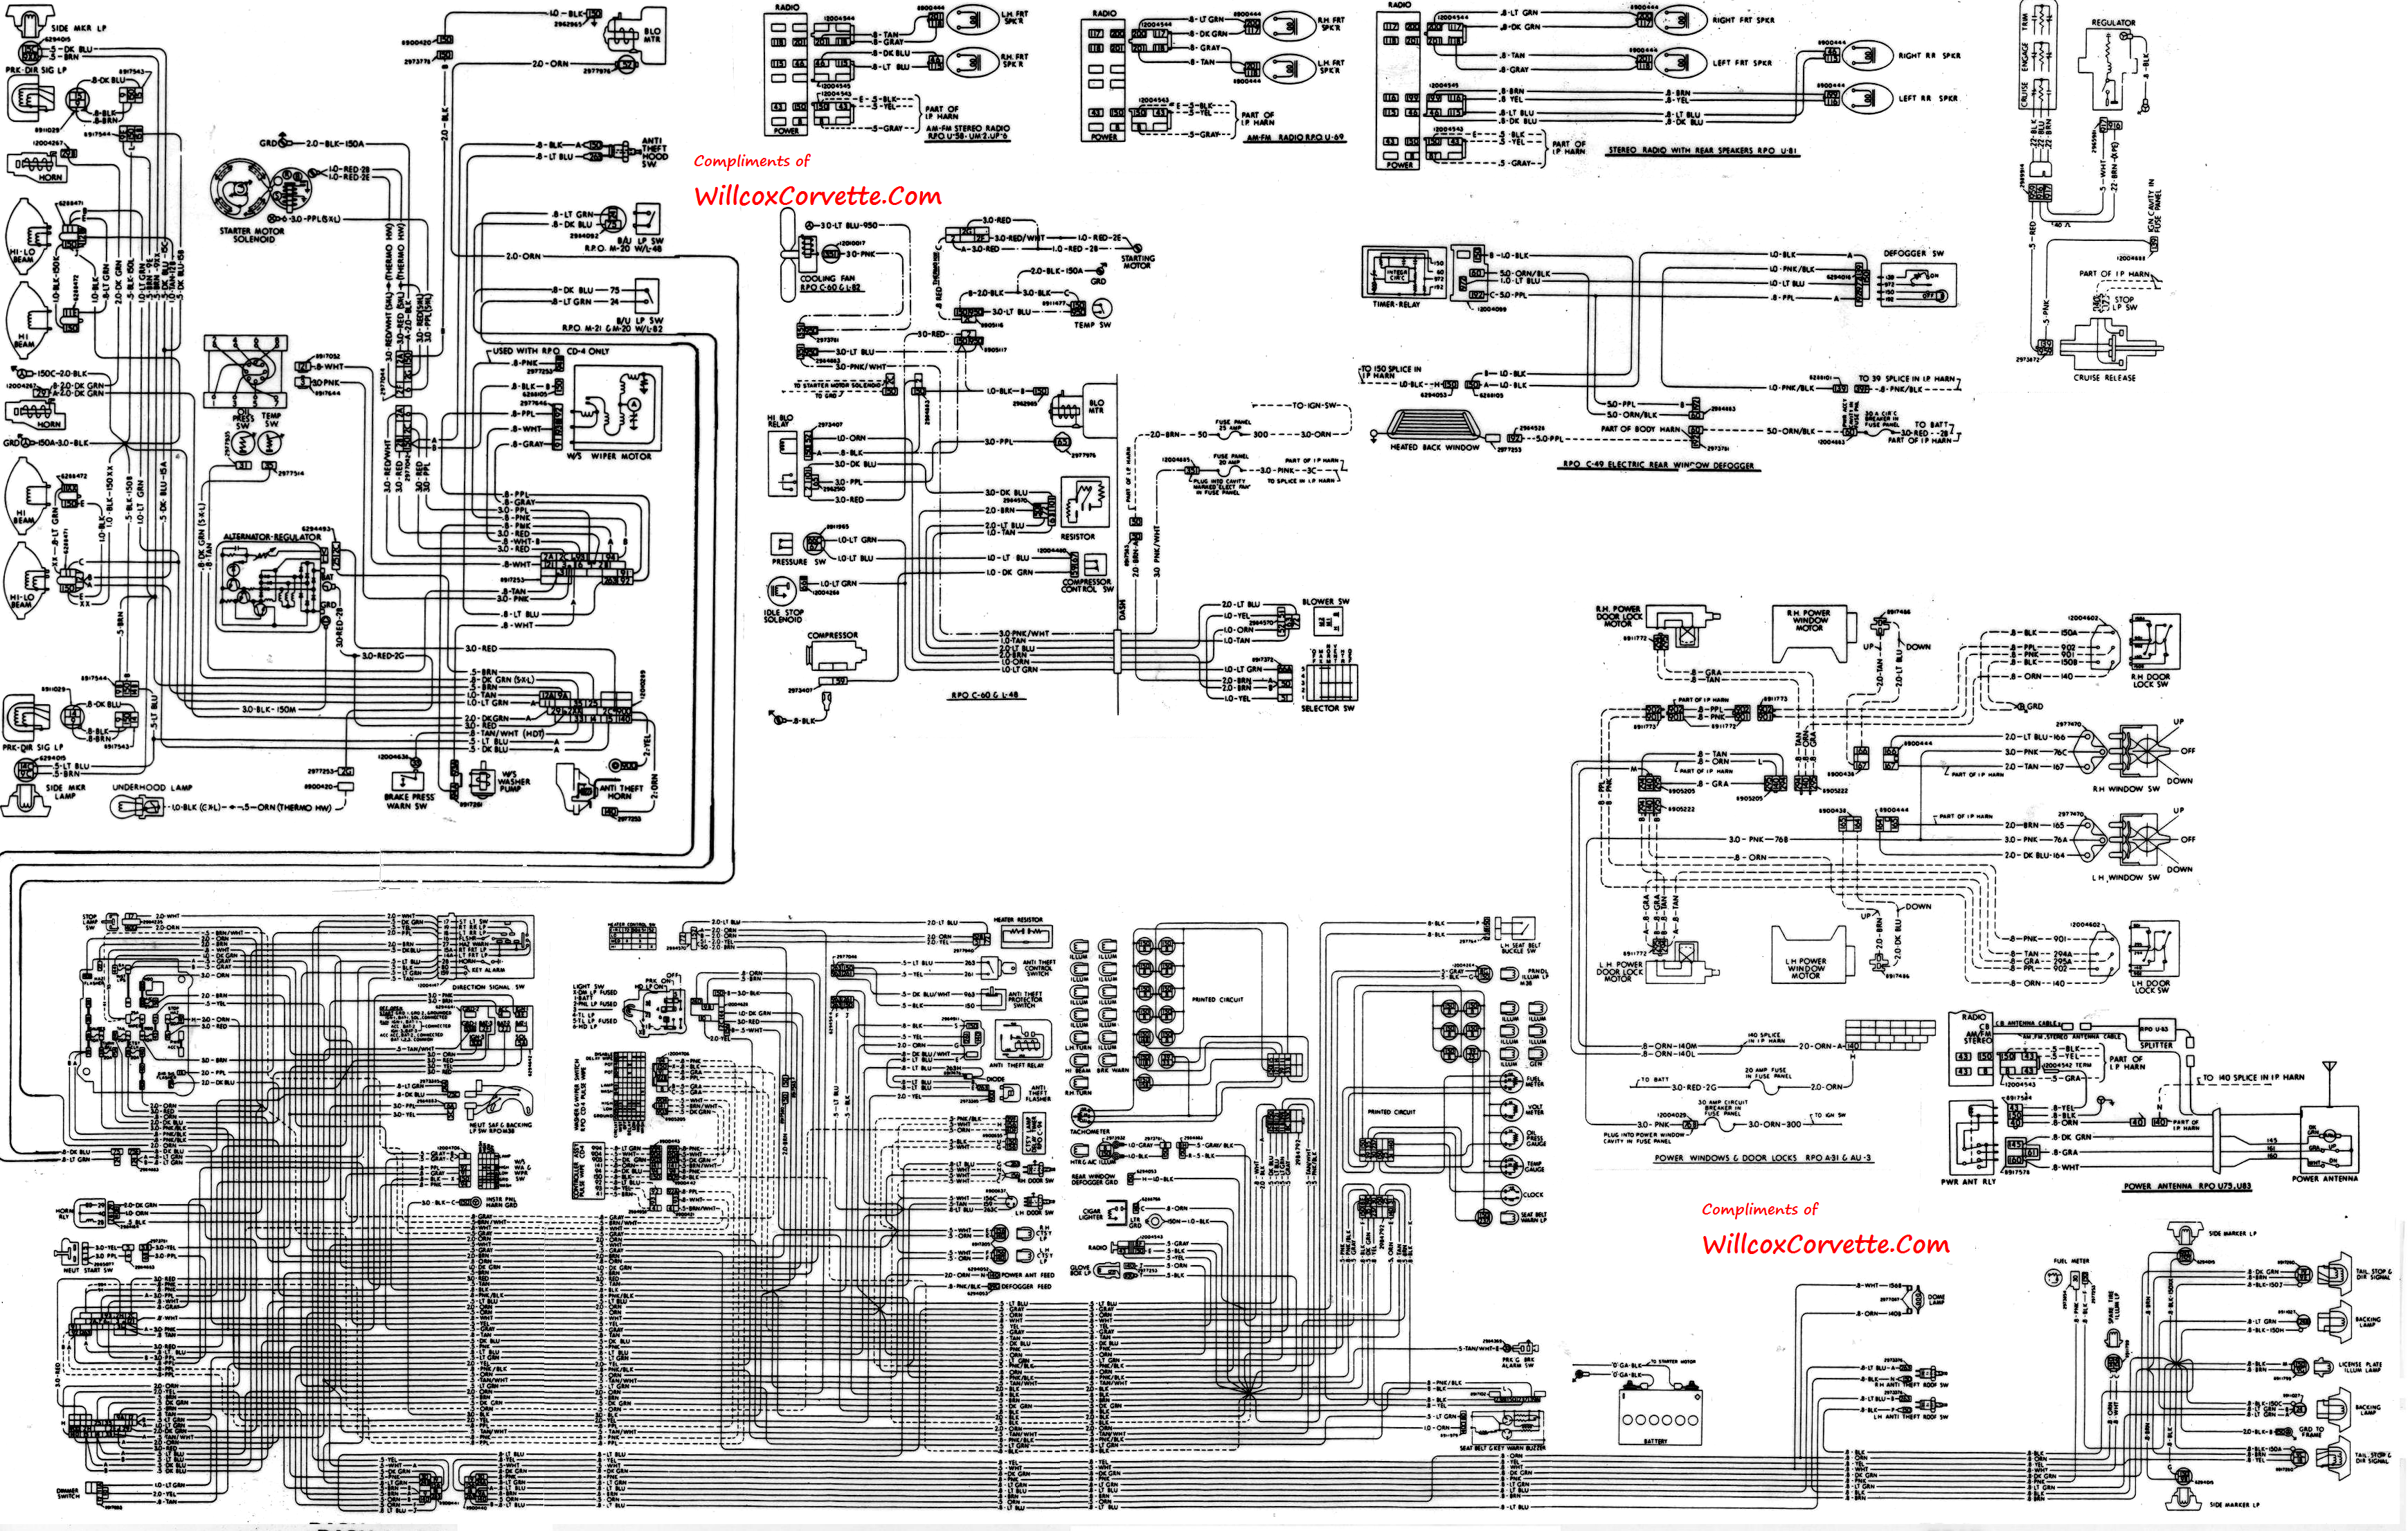 1979 wire diagram corvette fuse box diagram corvette free wiring diagrams 1971 corvette wiring diagram pdf at mifinder.co